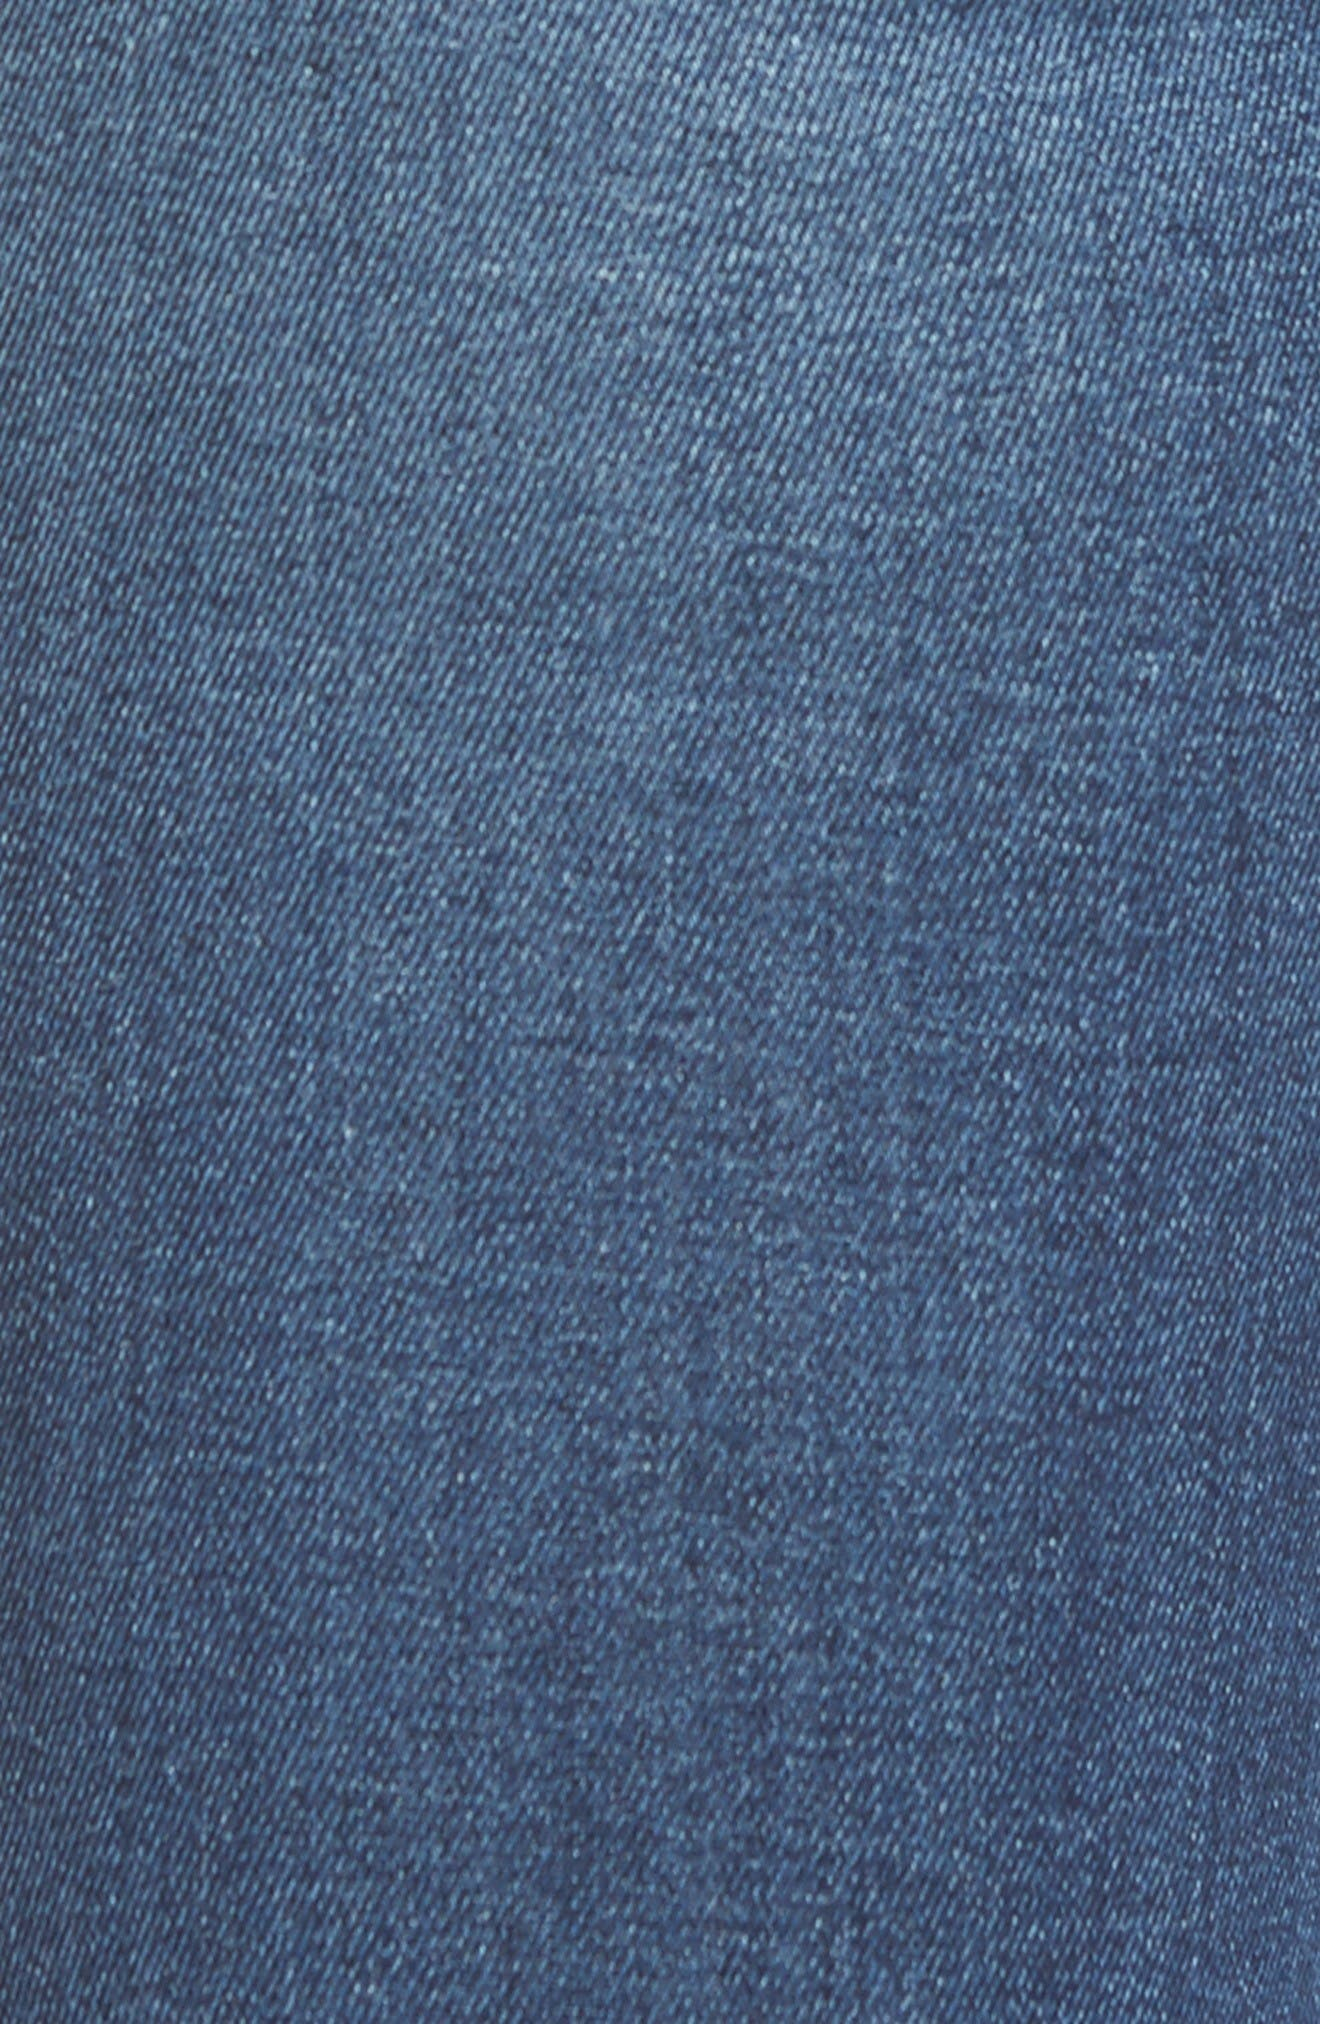 Alternate Image 5  - DL1961 Emma Power Legging Jeans (Quilter)